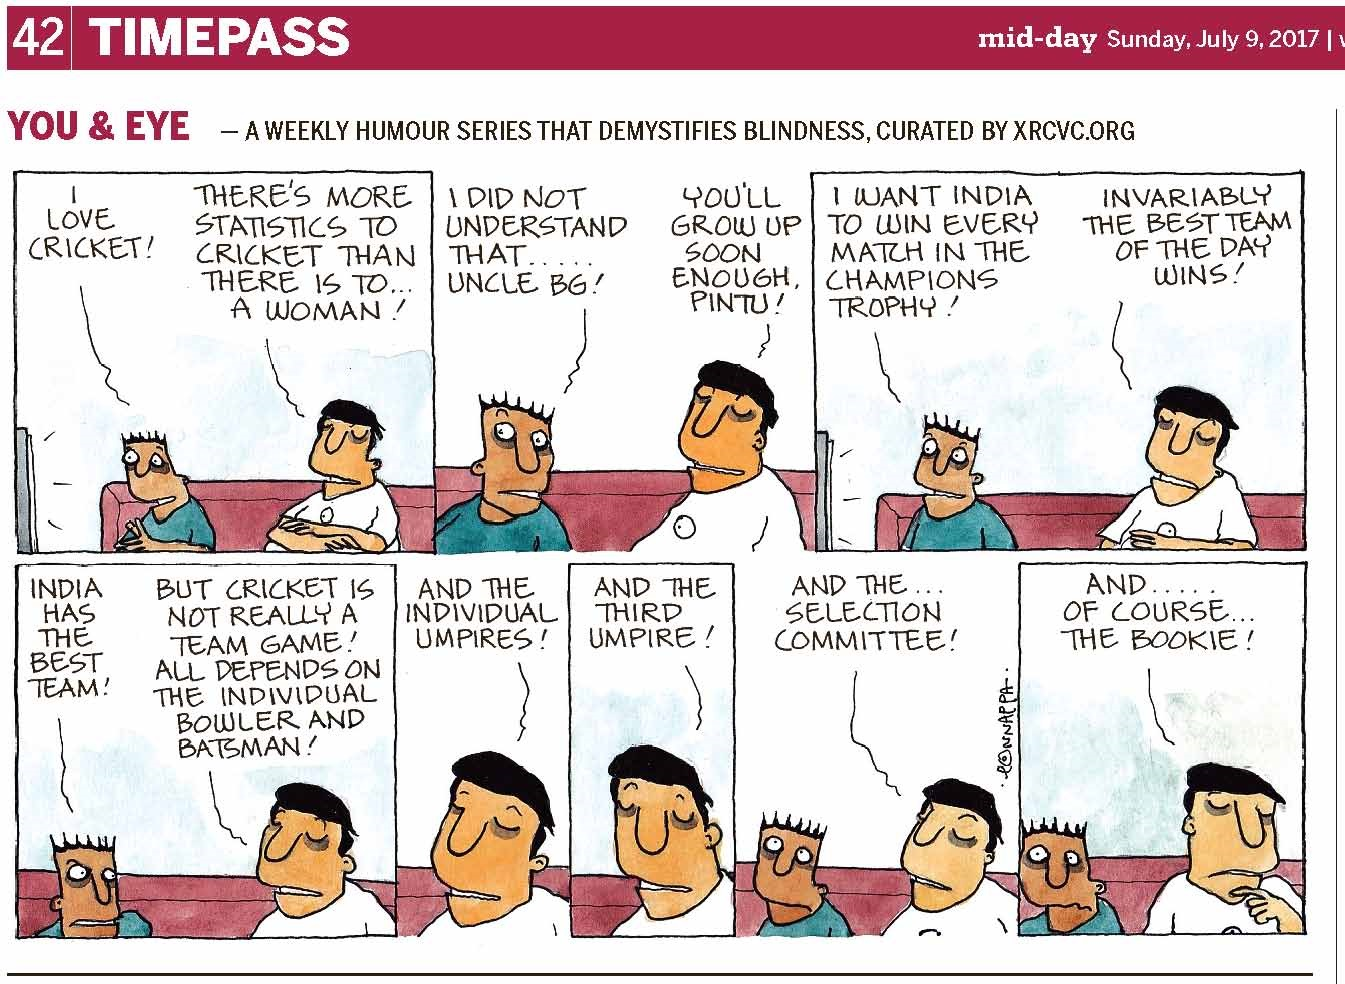 (top-left) 42 | TIMEPASS (top-right) mid-day Sunday, July 9, 2017 YOU & EYE – A WEEKLY HUMOUR SERIES THAT DEMYSTIFIES BLINDNESS, CURATED BY XRCVC.ORG Image description: A cartoon strip with 8 frames… Frame 1: (Pintu and BG are seen sitting on a pink sofa facing the TV in front of them. Short straight lines around the TV screen represent sound.) Pintu: I love cricket! BG: There's more statistics to cricket than there is to… a woman! Frame 2: (A close-up of Pintu and BG, sitting on the sofa, with Pintu's face turned slightly to the left to look at BG, while his eyes still appear to be fixed in front of him, towards the TV.) Pintu: I did not understand that… Uncle BG! BG: You'll grow up soon enough, Pintu! Frame 3: (Pintu and BG are seen sitting on the sofa facing the TV in front of them. Pintu's eyes are almost popping out with his eyebrows raised high. Short straight lines around the TV screen represent sound.) Pintu: I want India to win every match in the Champions Trophy! BG: Invariably the best team of the day wins! Frame 4: (A close-up of Pintu and BG, sitting on the sofa, with Pintu now turned towards to the left looking at BG intensely, almost angrily.) Pintu: India has the best team! BG: But cricket is not really a team game! All depends on the individual bowler and batsman!  Frame 5: (A close-up of BG sitting on the sofa) BG: And the individual umpires! Frame 6: (A close-up of BG sitting on the sofa) BG: And the third umpire! Frame 7: (A close-up of Pintu and BG, sitting on the sofa, with a straight-faced Pintu looking straight ahead and his eyes pointing upwards)